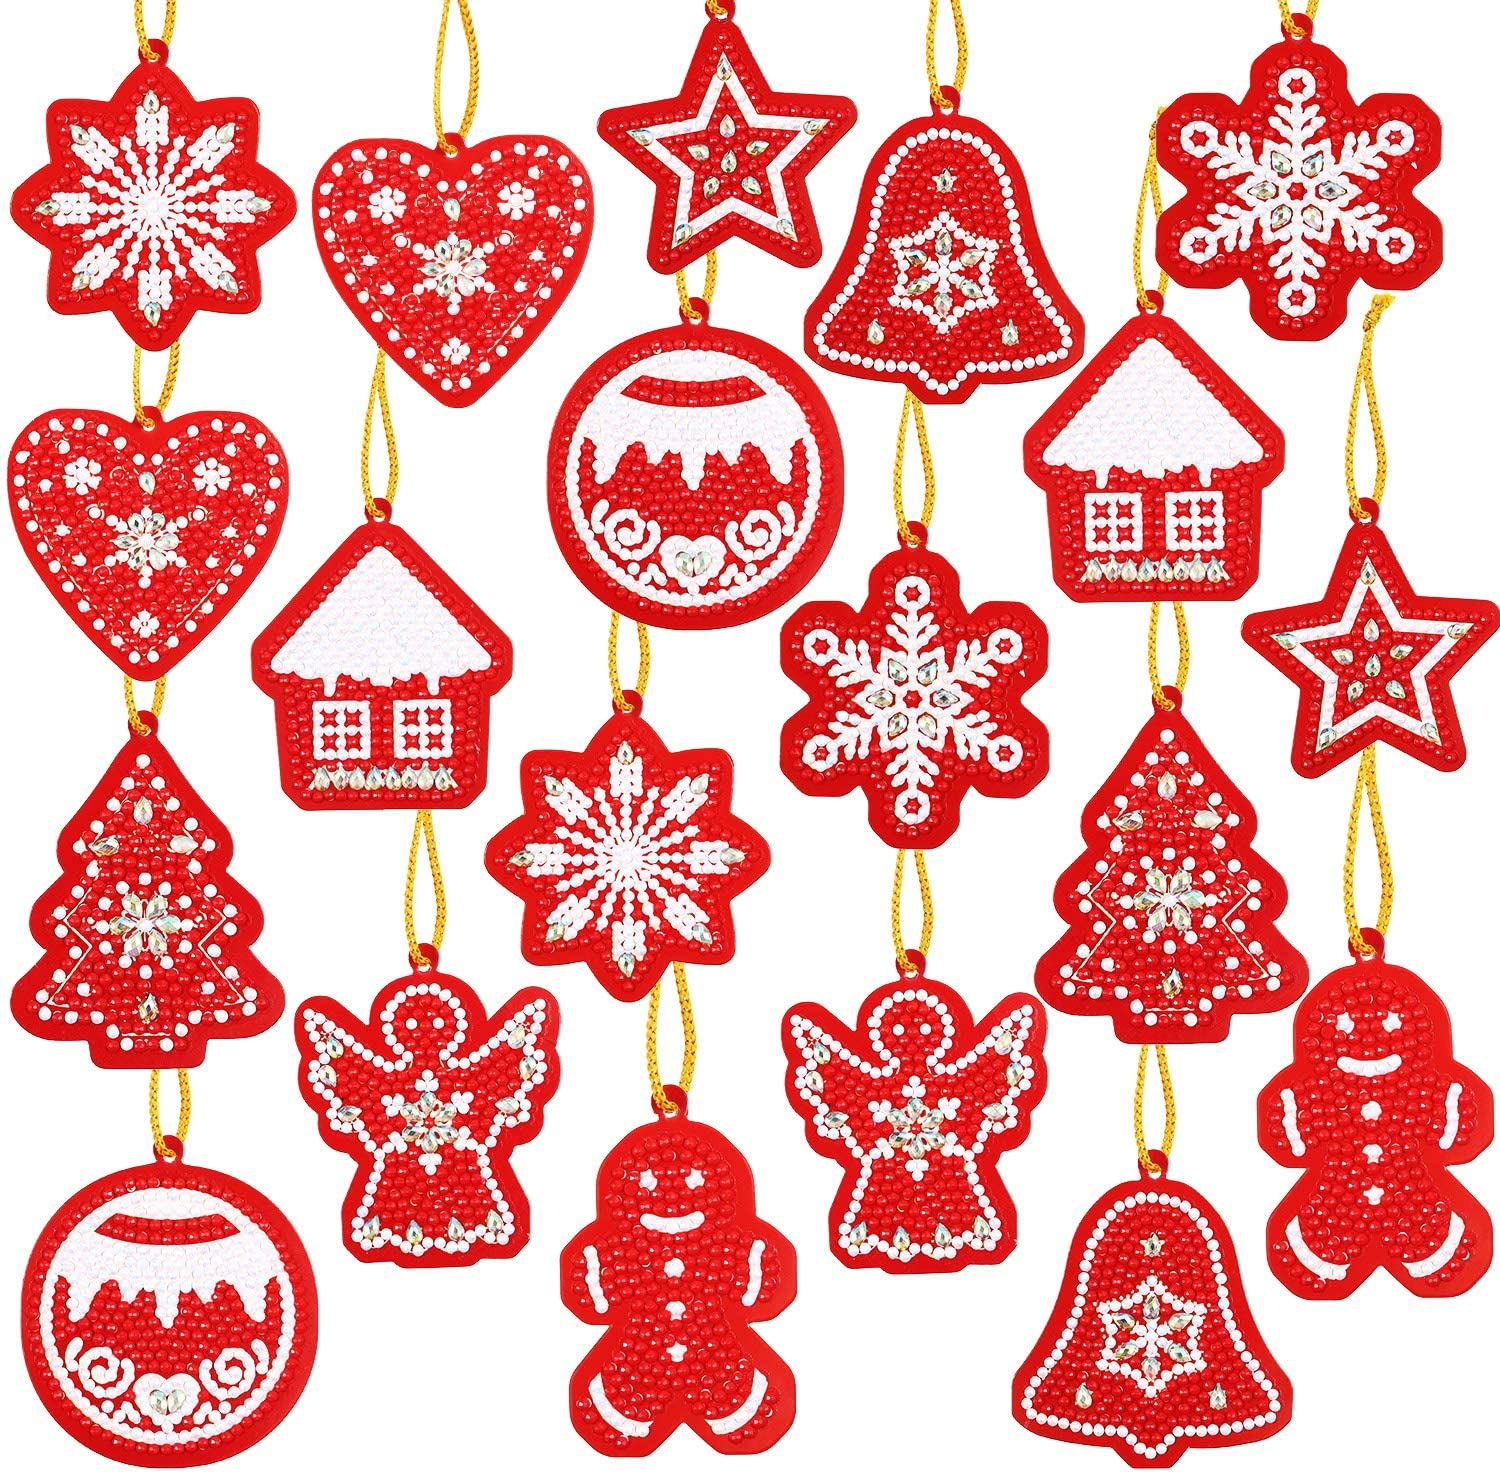 20 Pieces Christmas DIY Artificial Diamond Painting Gift Tags Resin Painting Handicraft Cards Winter DIY Diamond Key Chain for Family Decoration